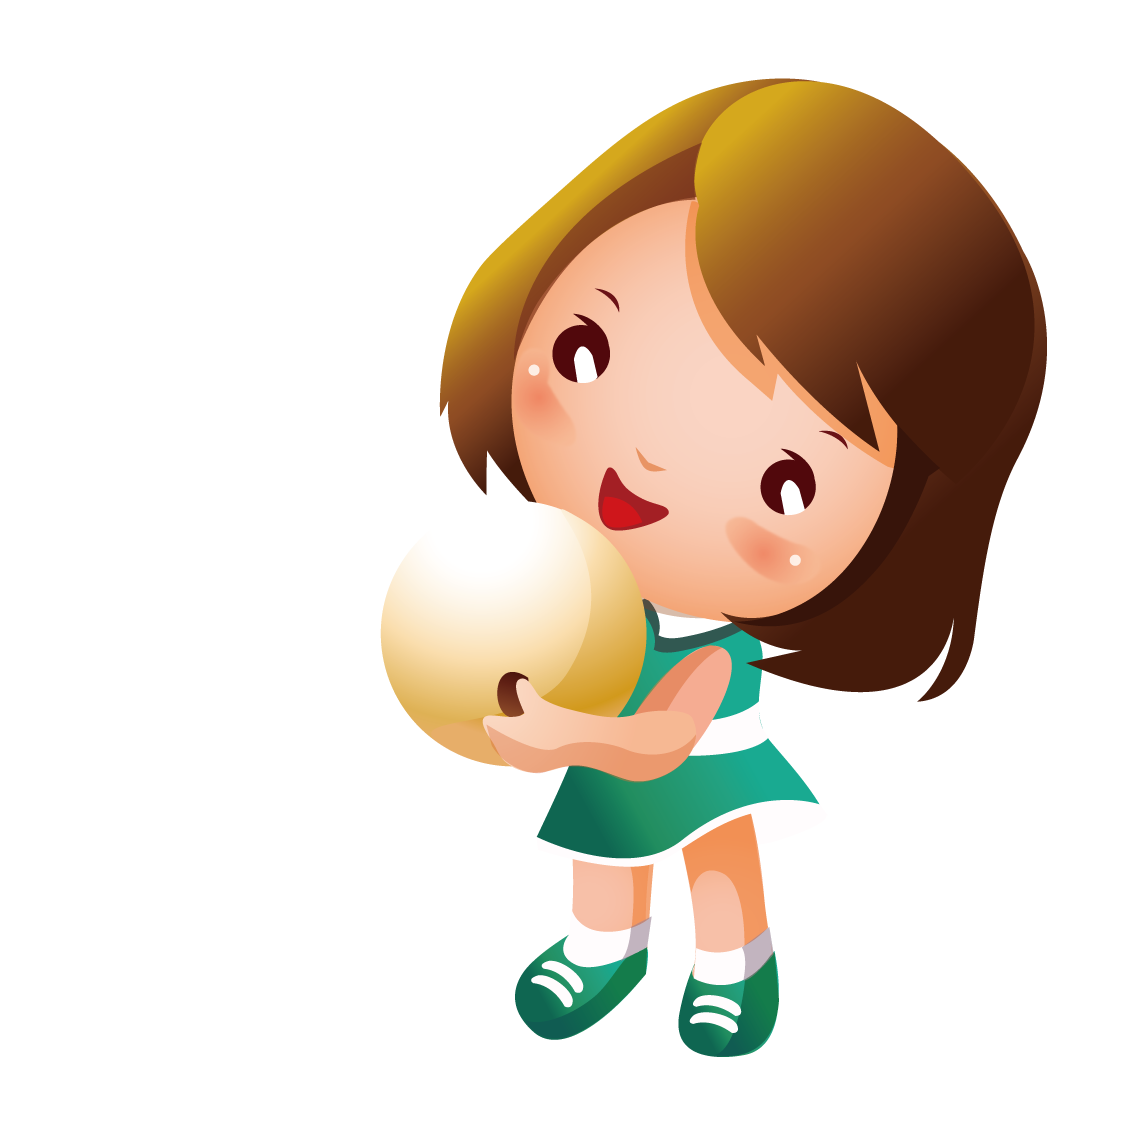 Apple bowling clipart freeuse download Bowling Girl Clip art - Take bowling cartoon girl 1137*1134 ... freeuse download